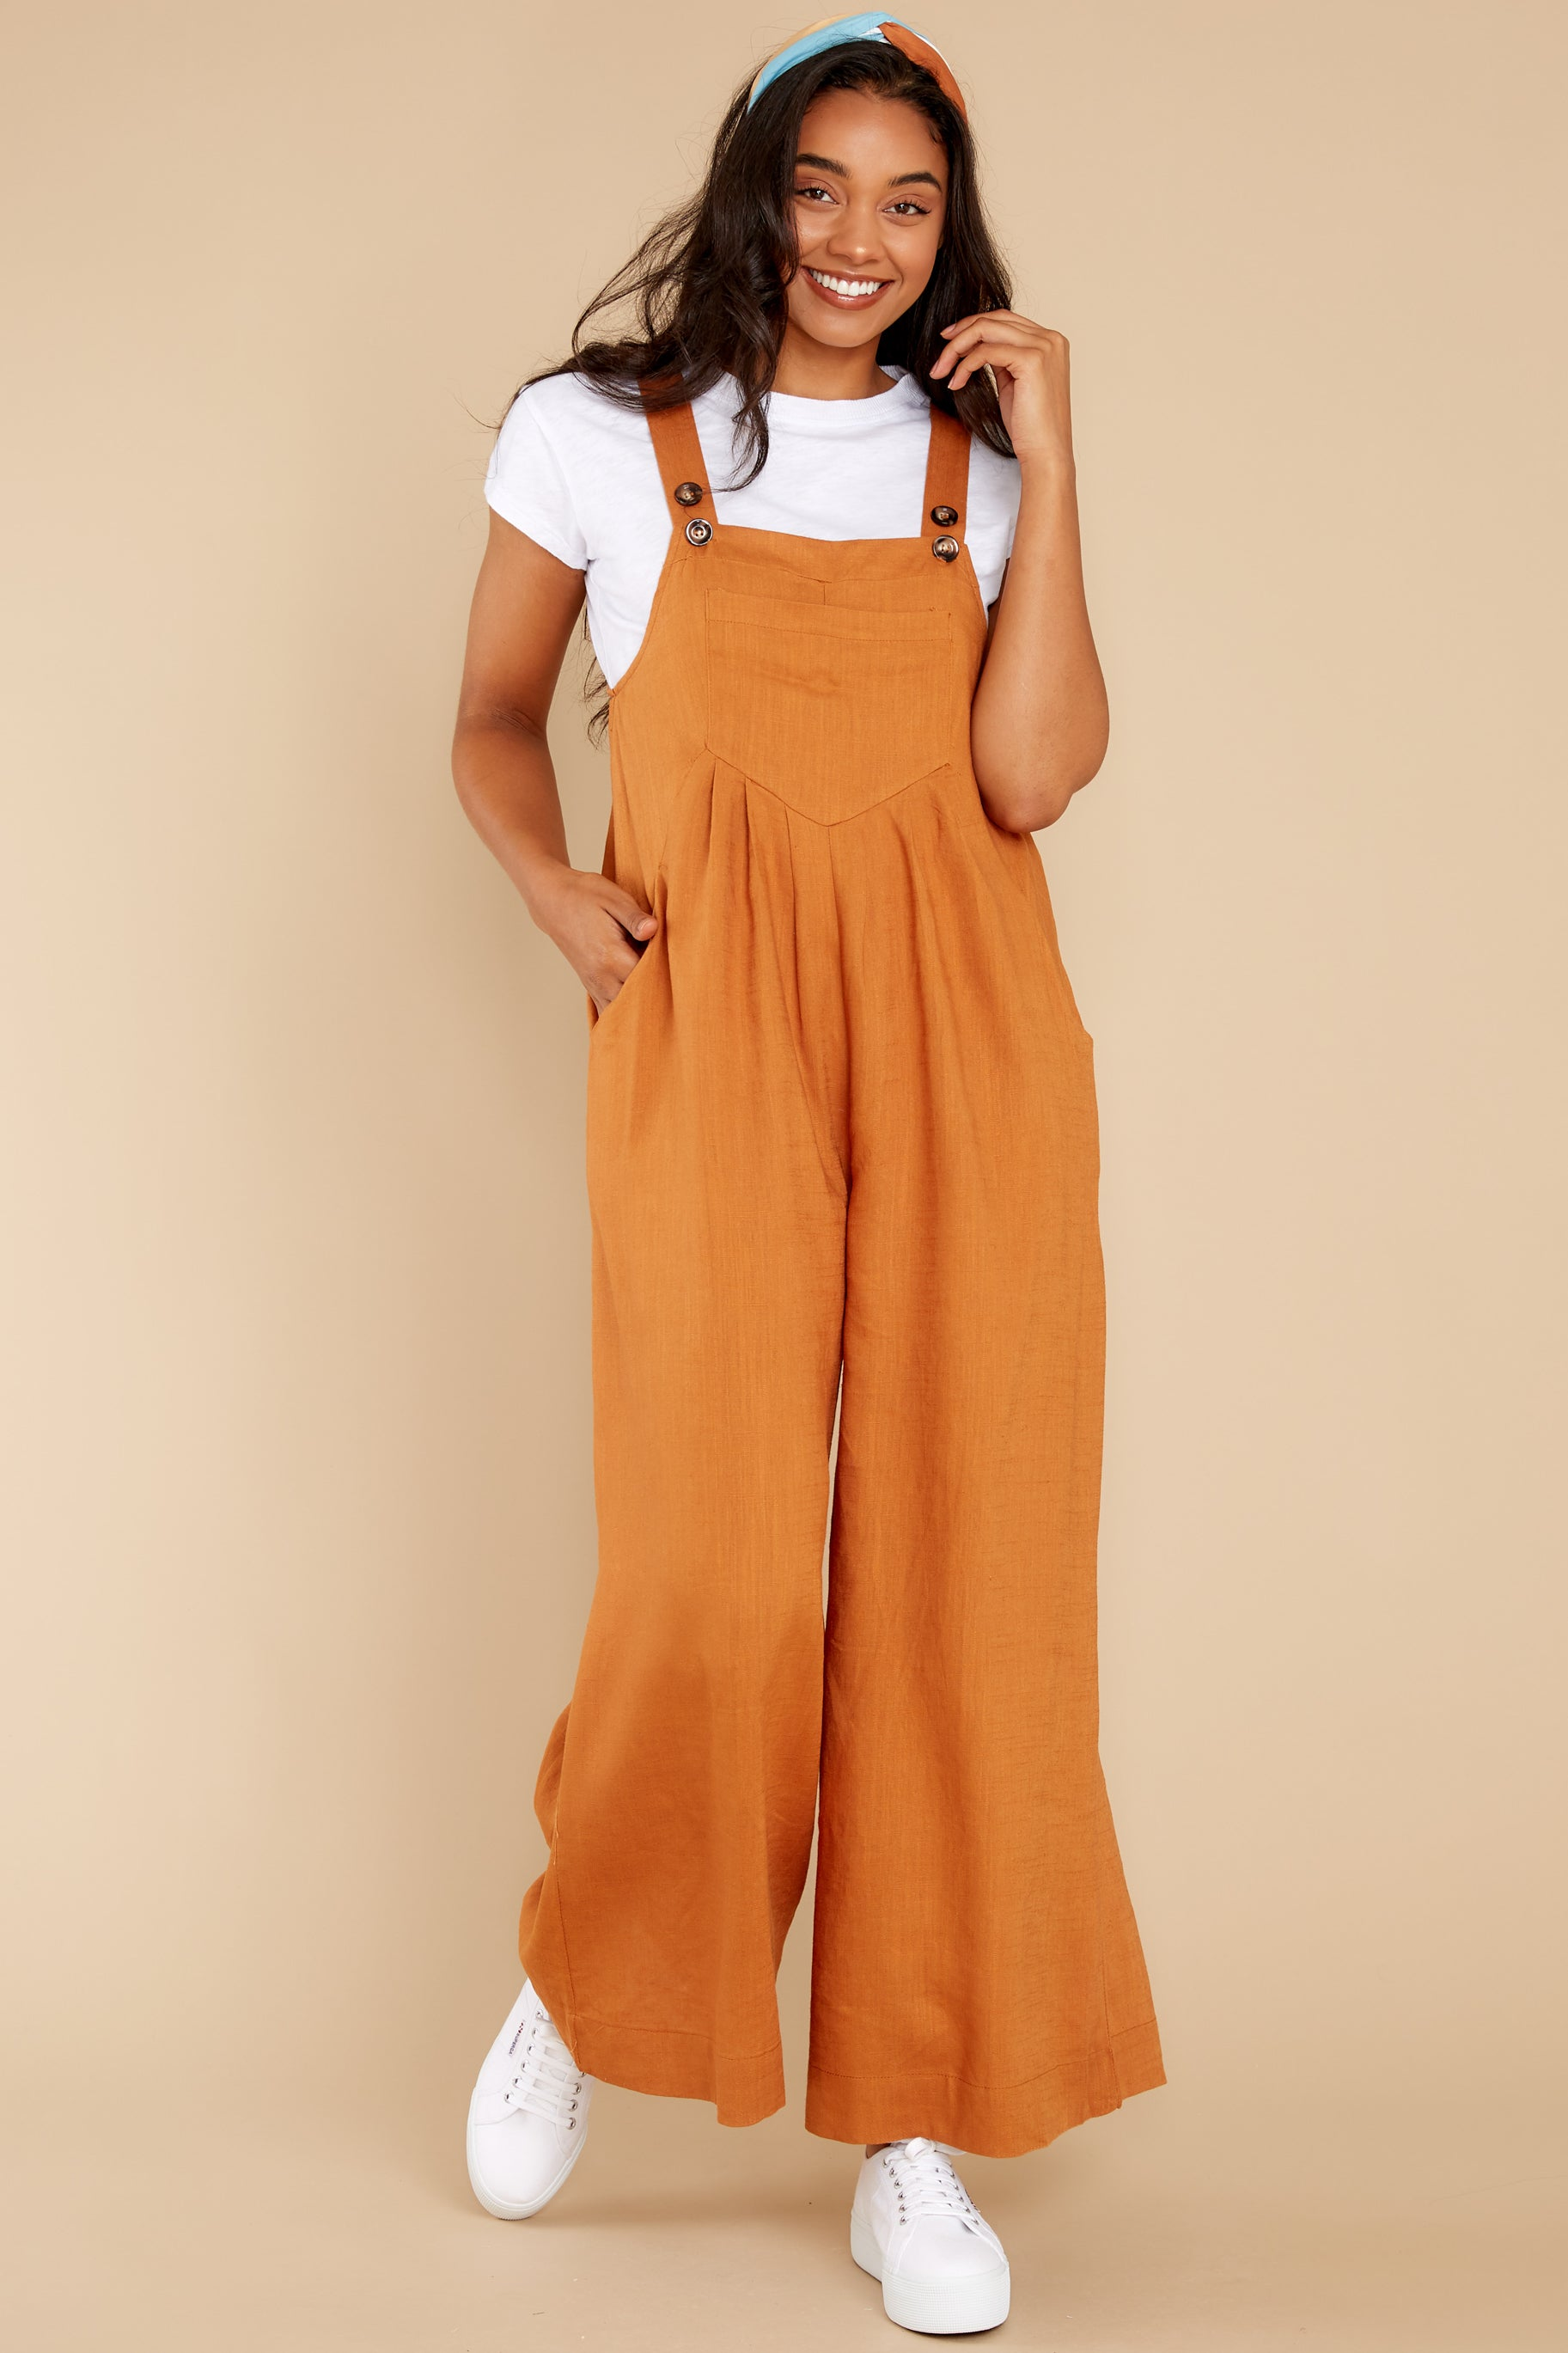 Cottagecore Clothing, Soft Aesthetic In It To Win It Butterscotch Jumpsuit Brown $50.00 AT vintagedancer.com